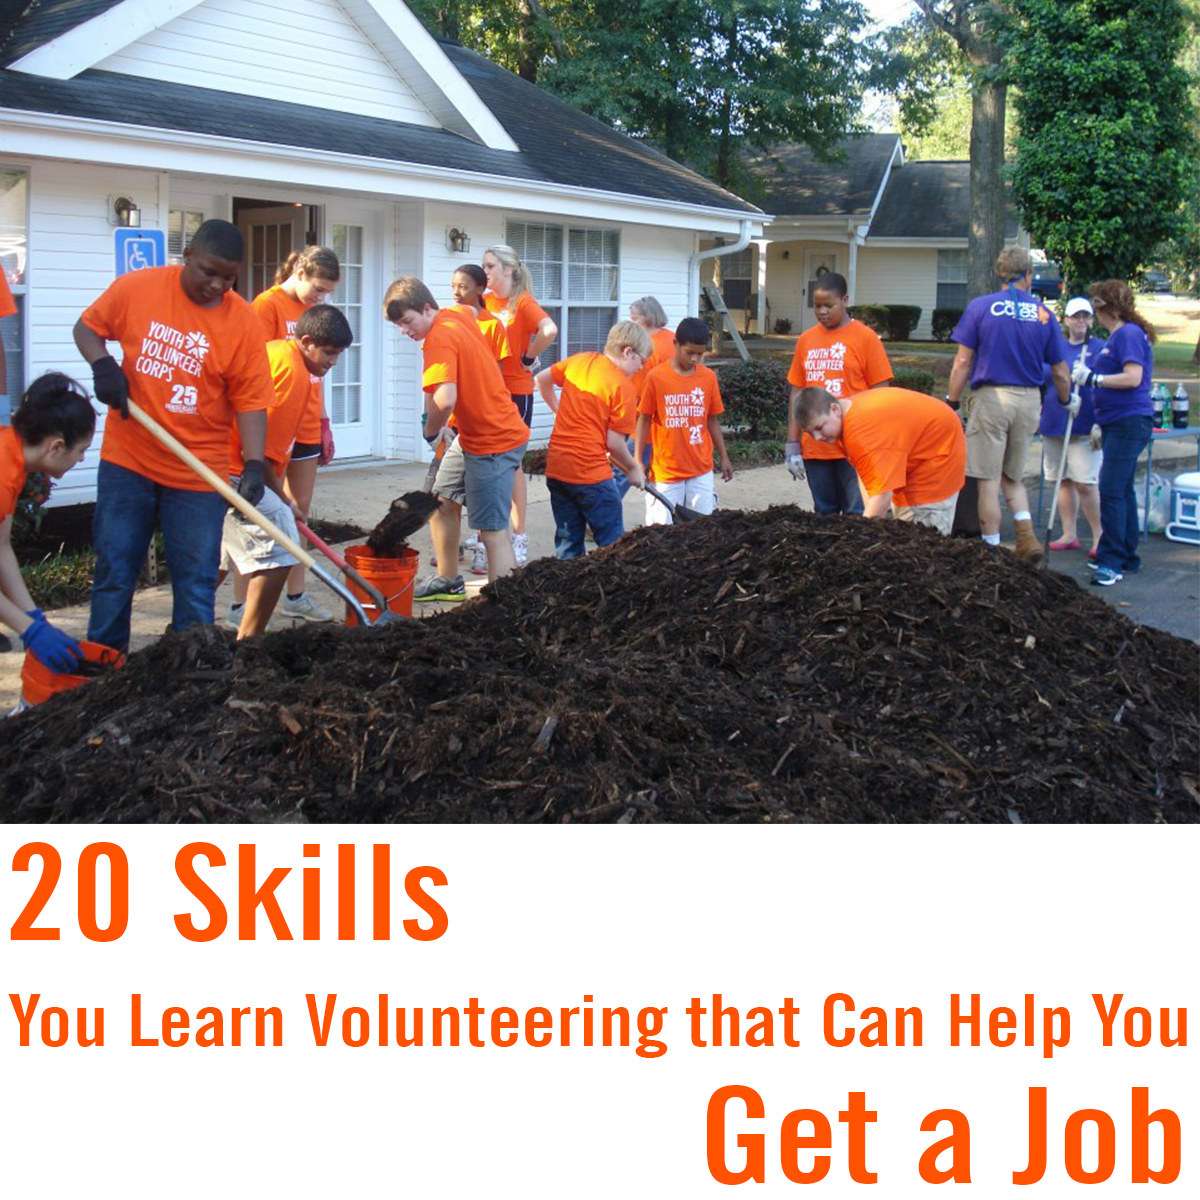 20 Skills You Learn Volunteering to Help You Get a Job